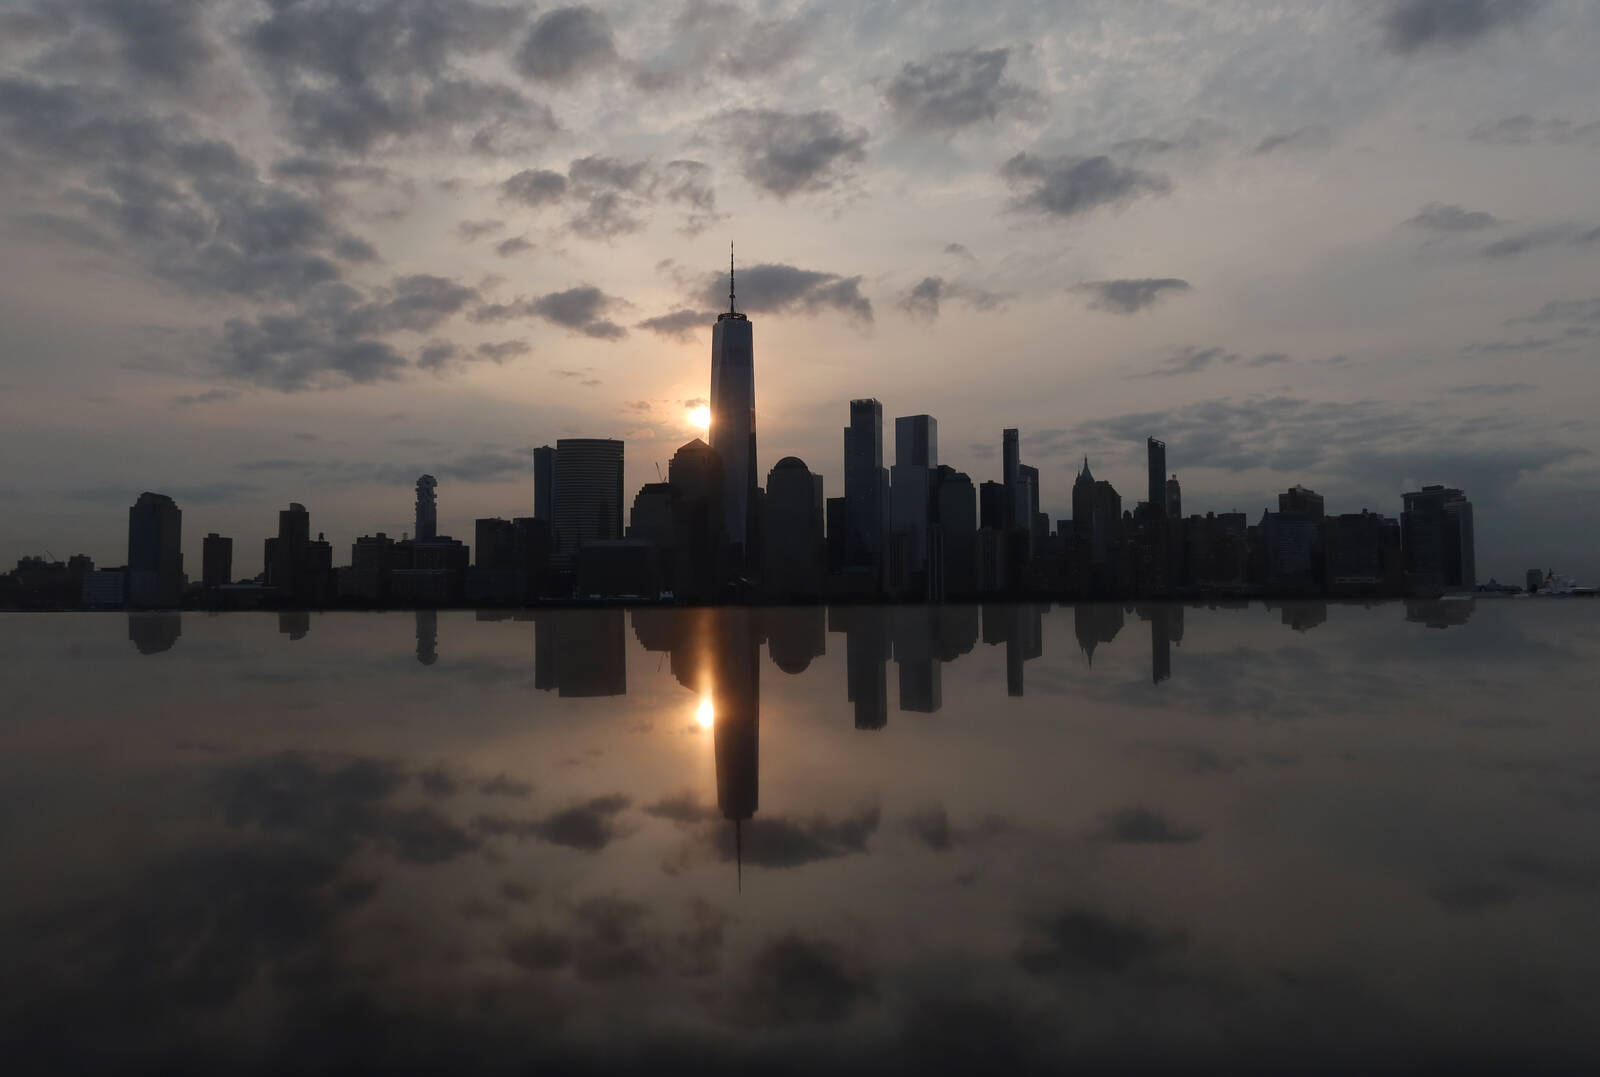 The sun rises behind the skyline of lower Manhattan and One World Trade Center in a haze created by smoke from west coast wildfires in New York City on September 17, 2020.